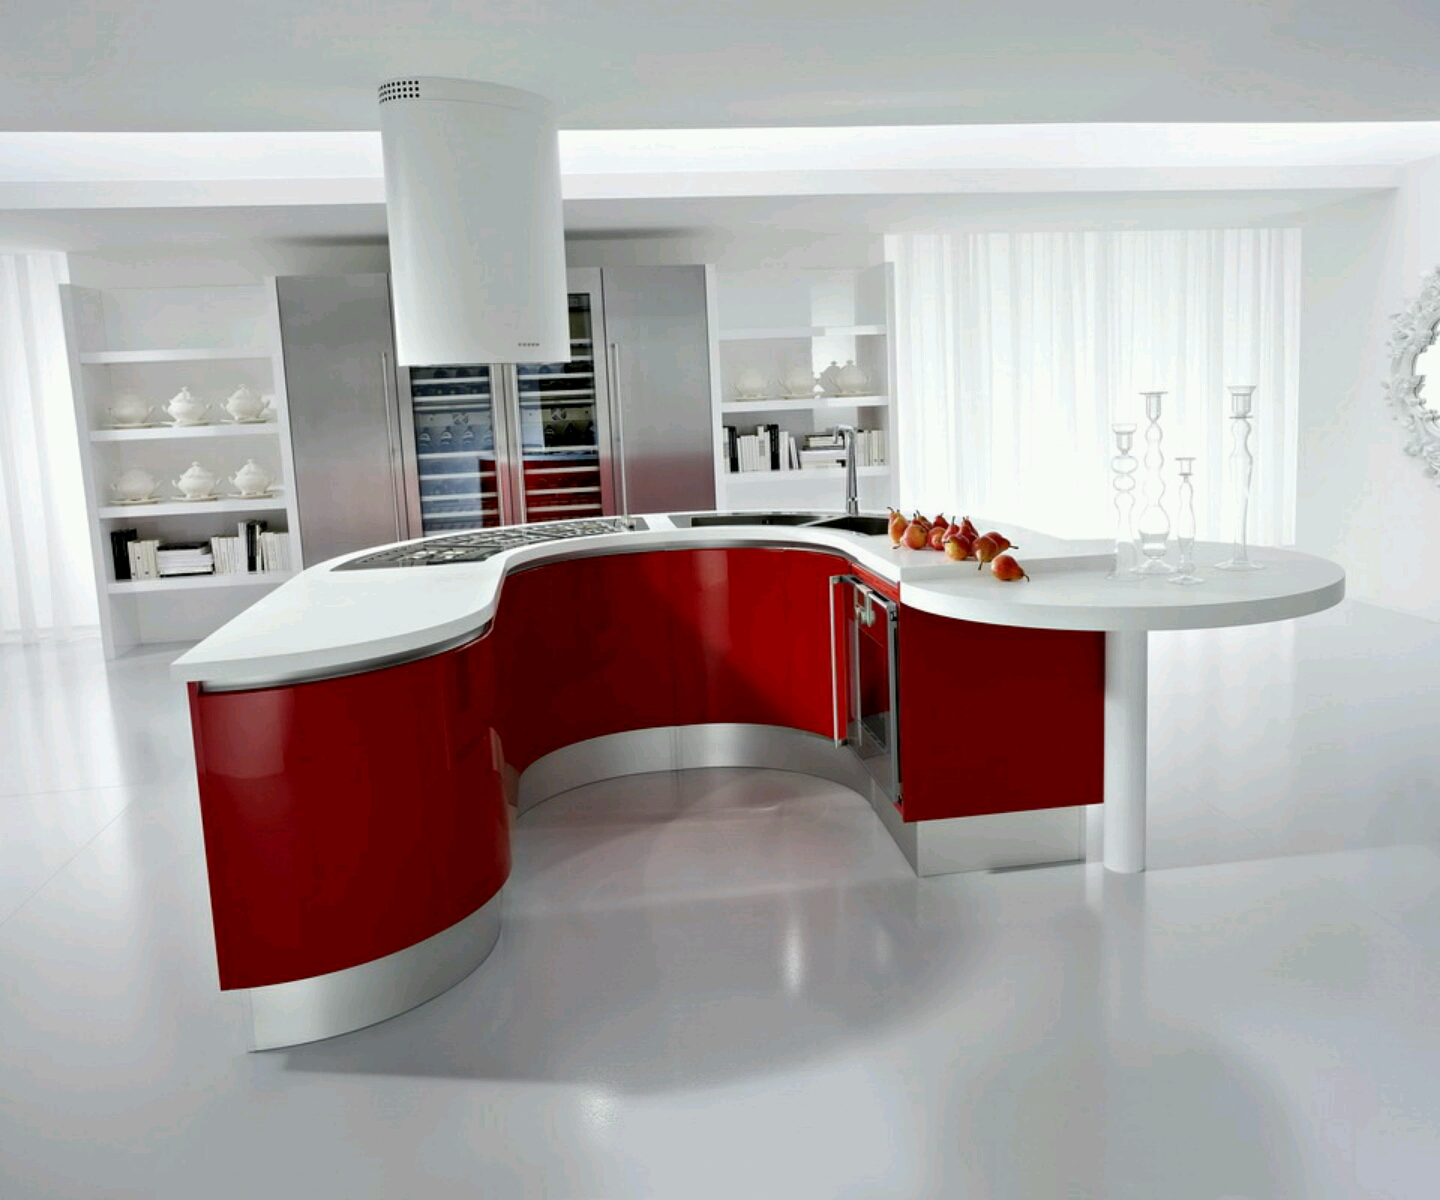 Modern kitchen cabinets designs ideas furniture gallery Design for cabinet for kitchen